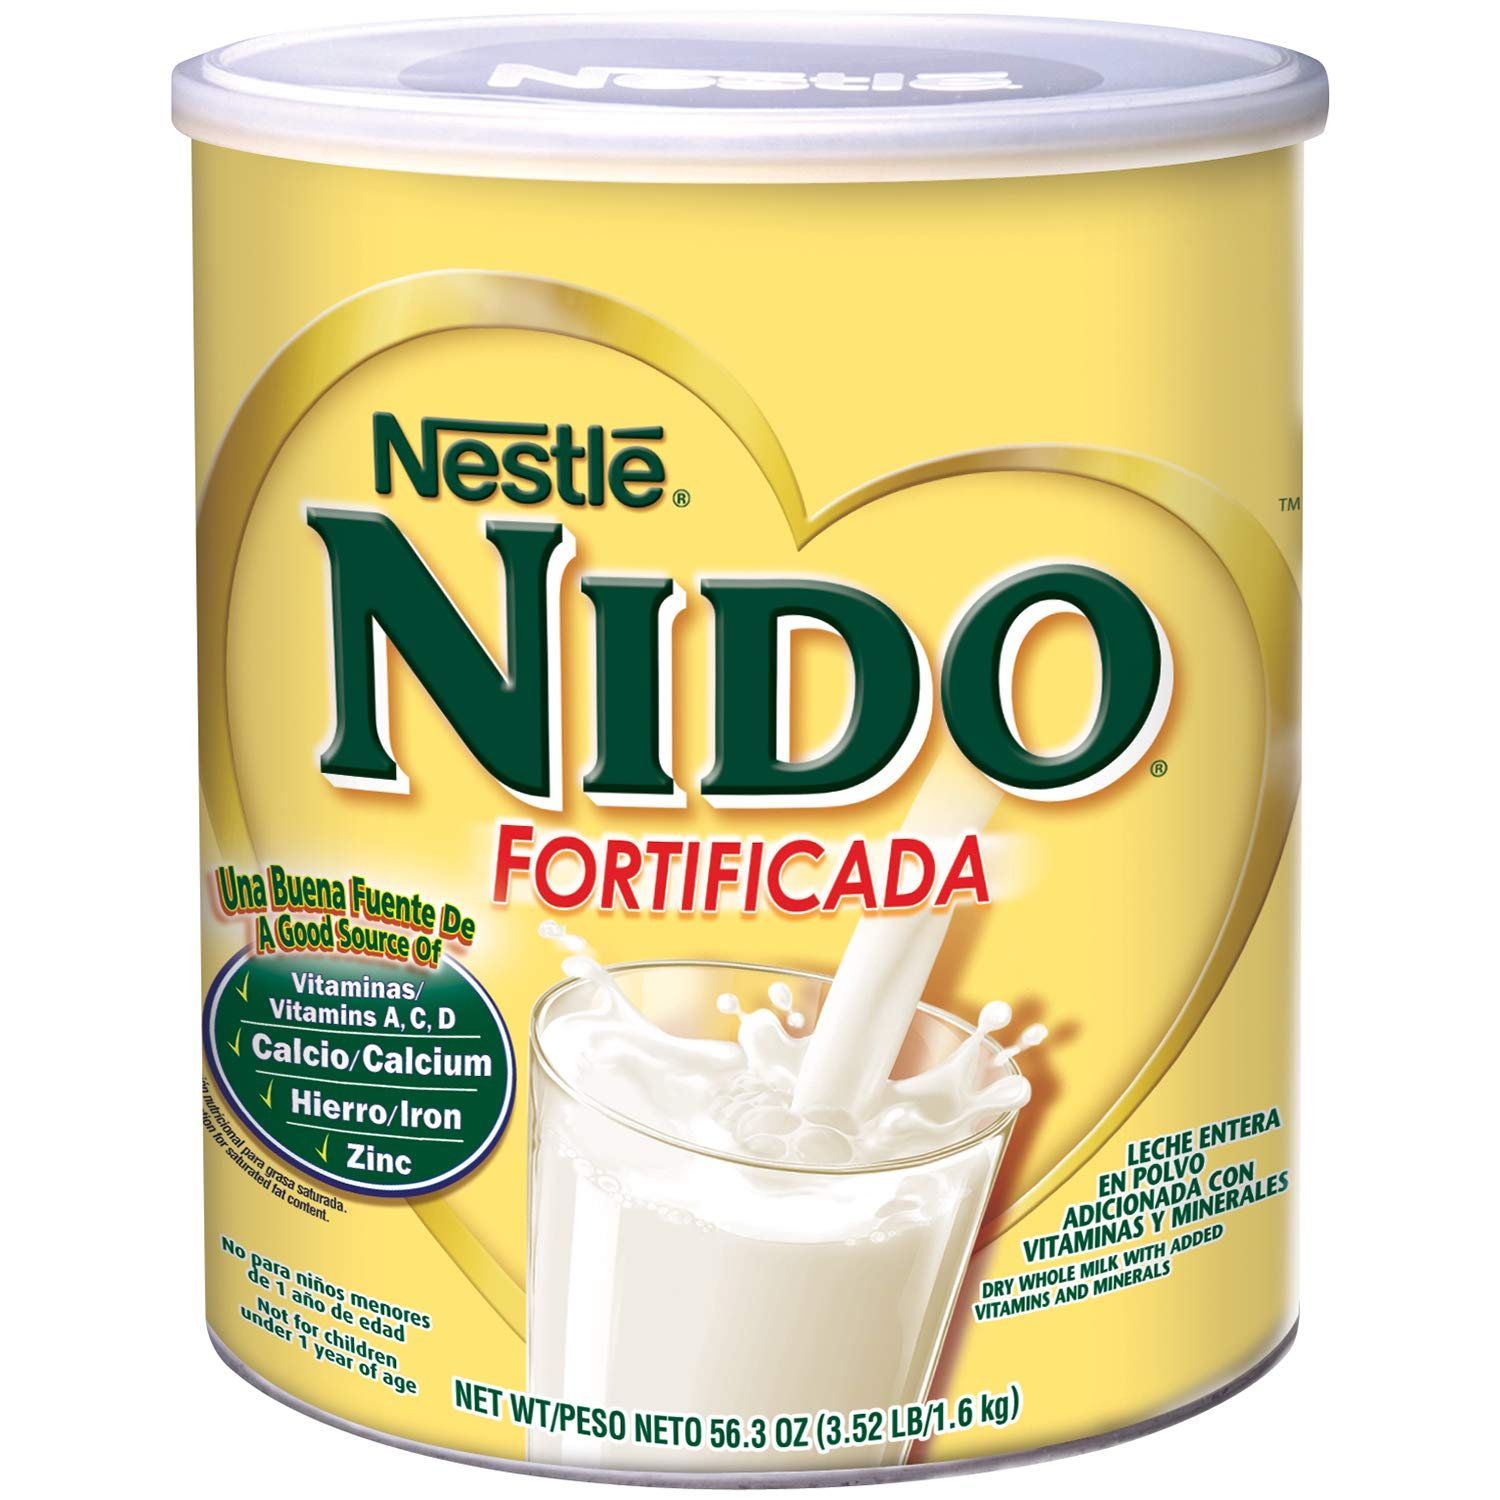 NESTLE NIDO Fortificada Dry Milk 56.3 Ounce. Canister (4 Pack)